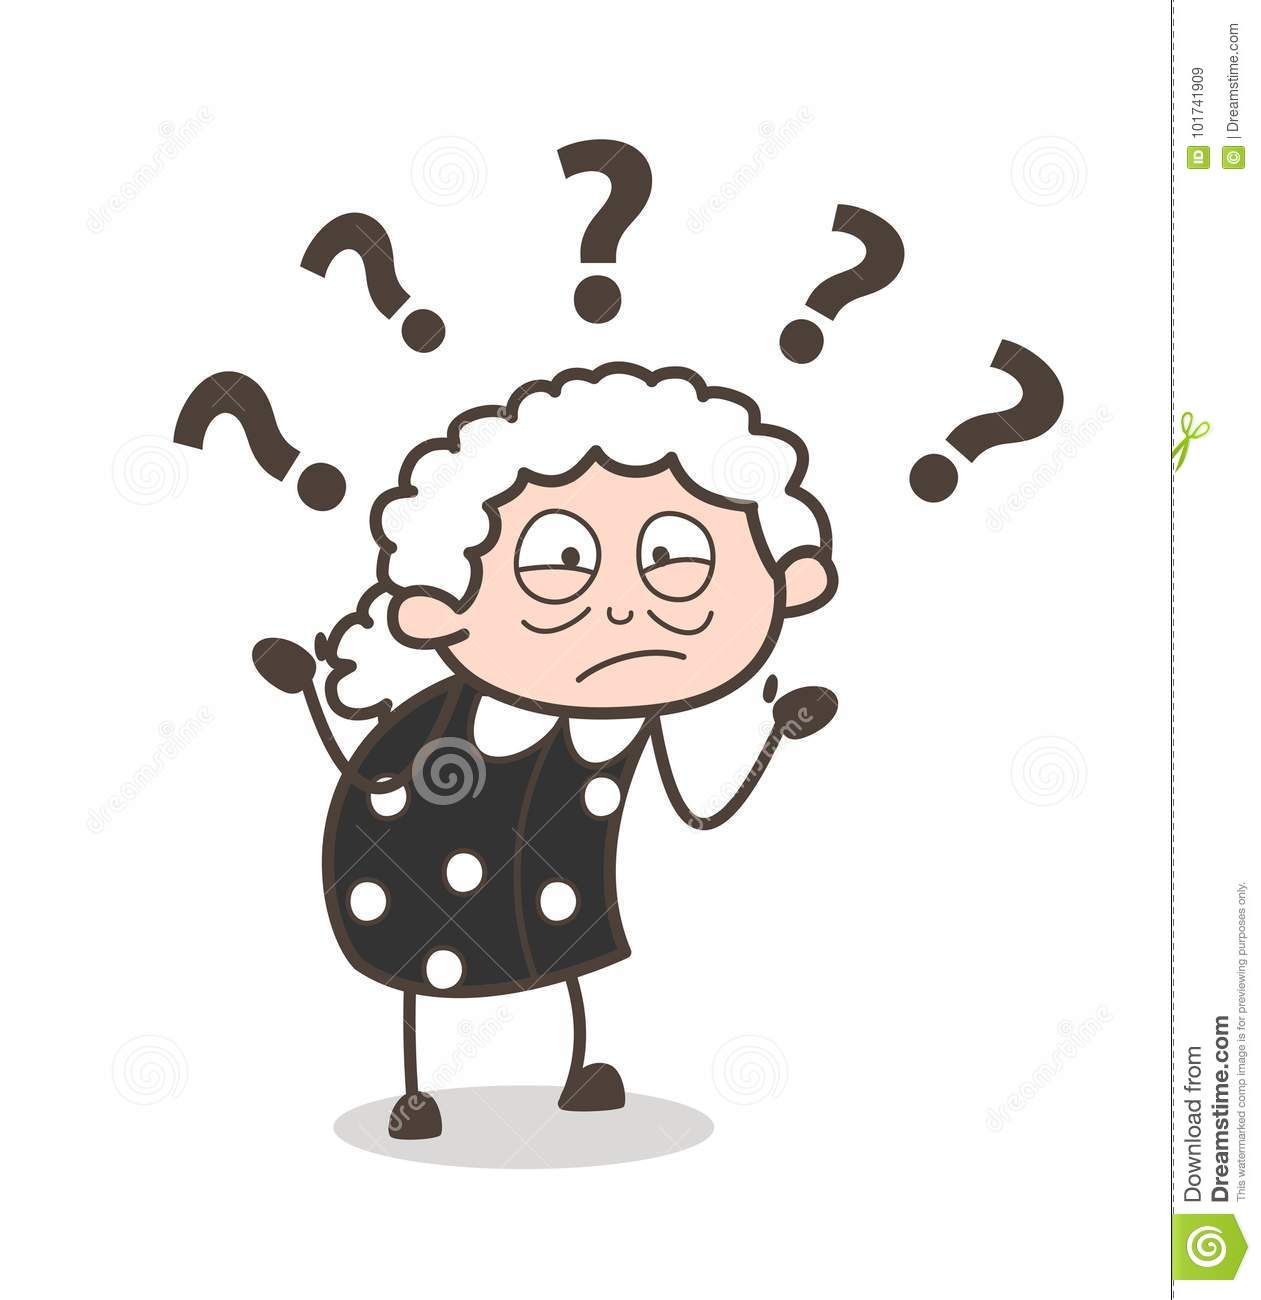 Cartoon Confused Old Woman Expression Vector Illustration Stock.